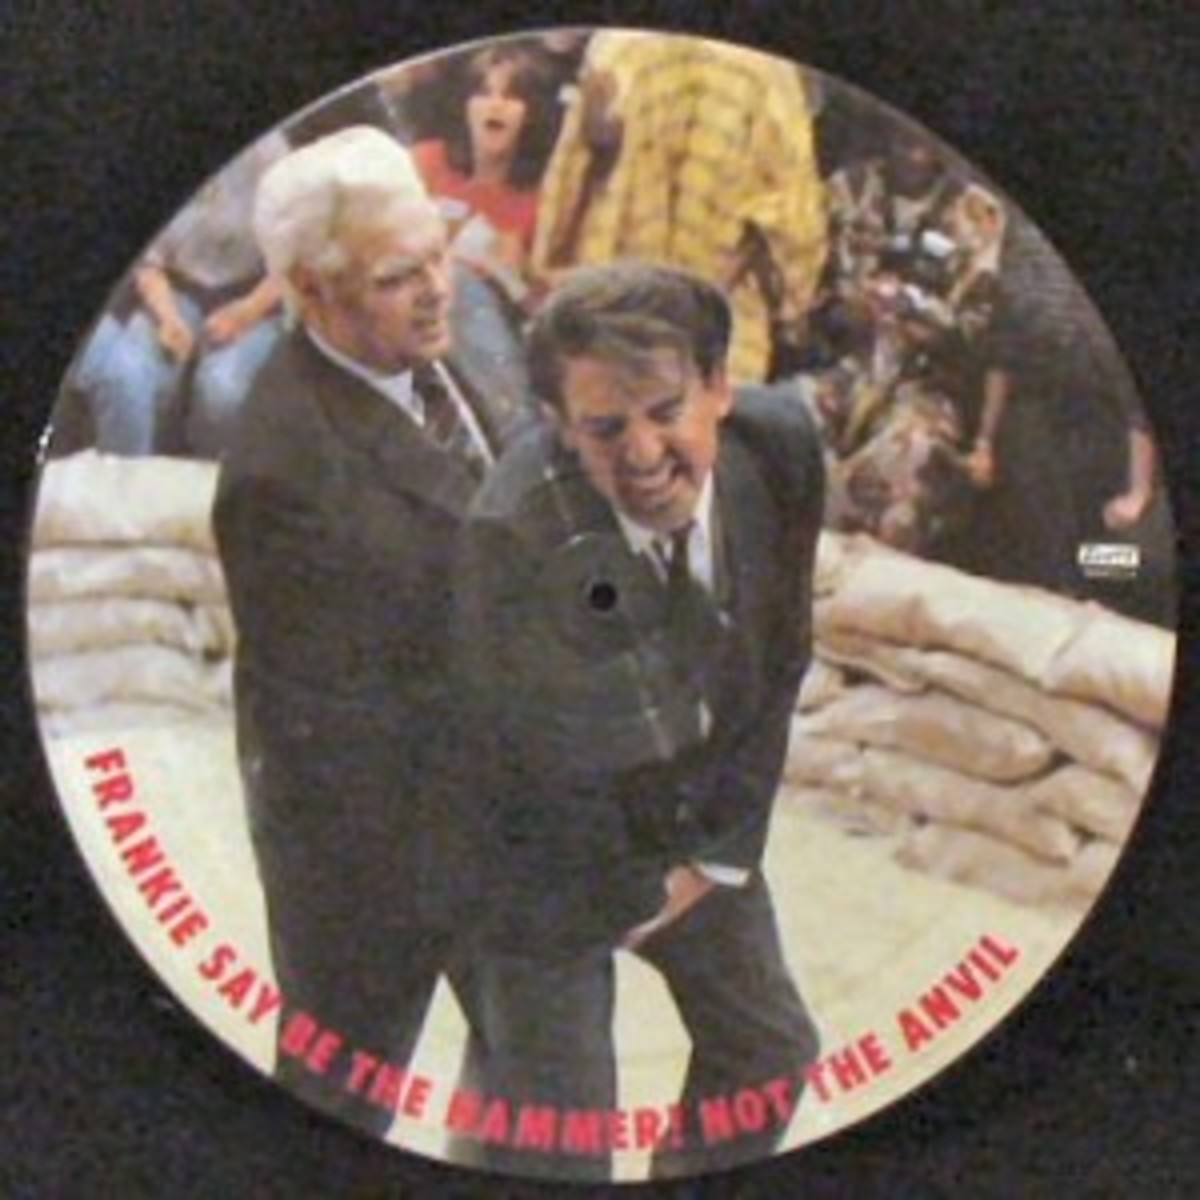 Frankie_Two_Tribes_12_inch_picture_disk